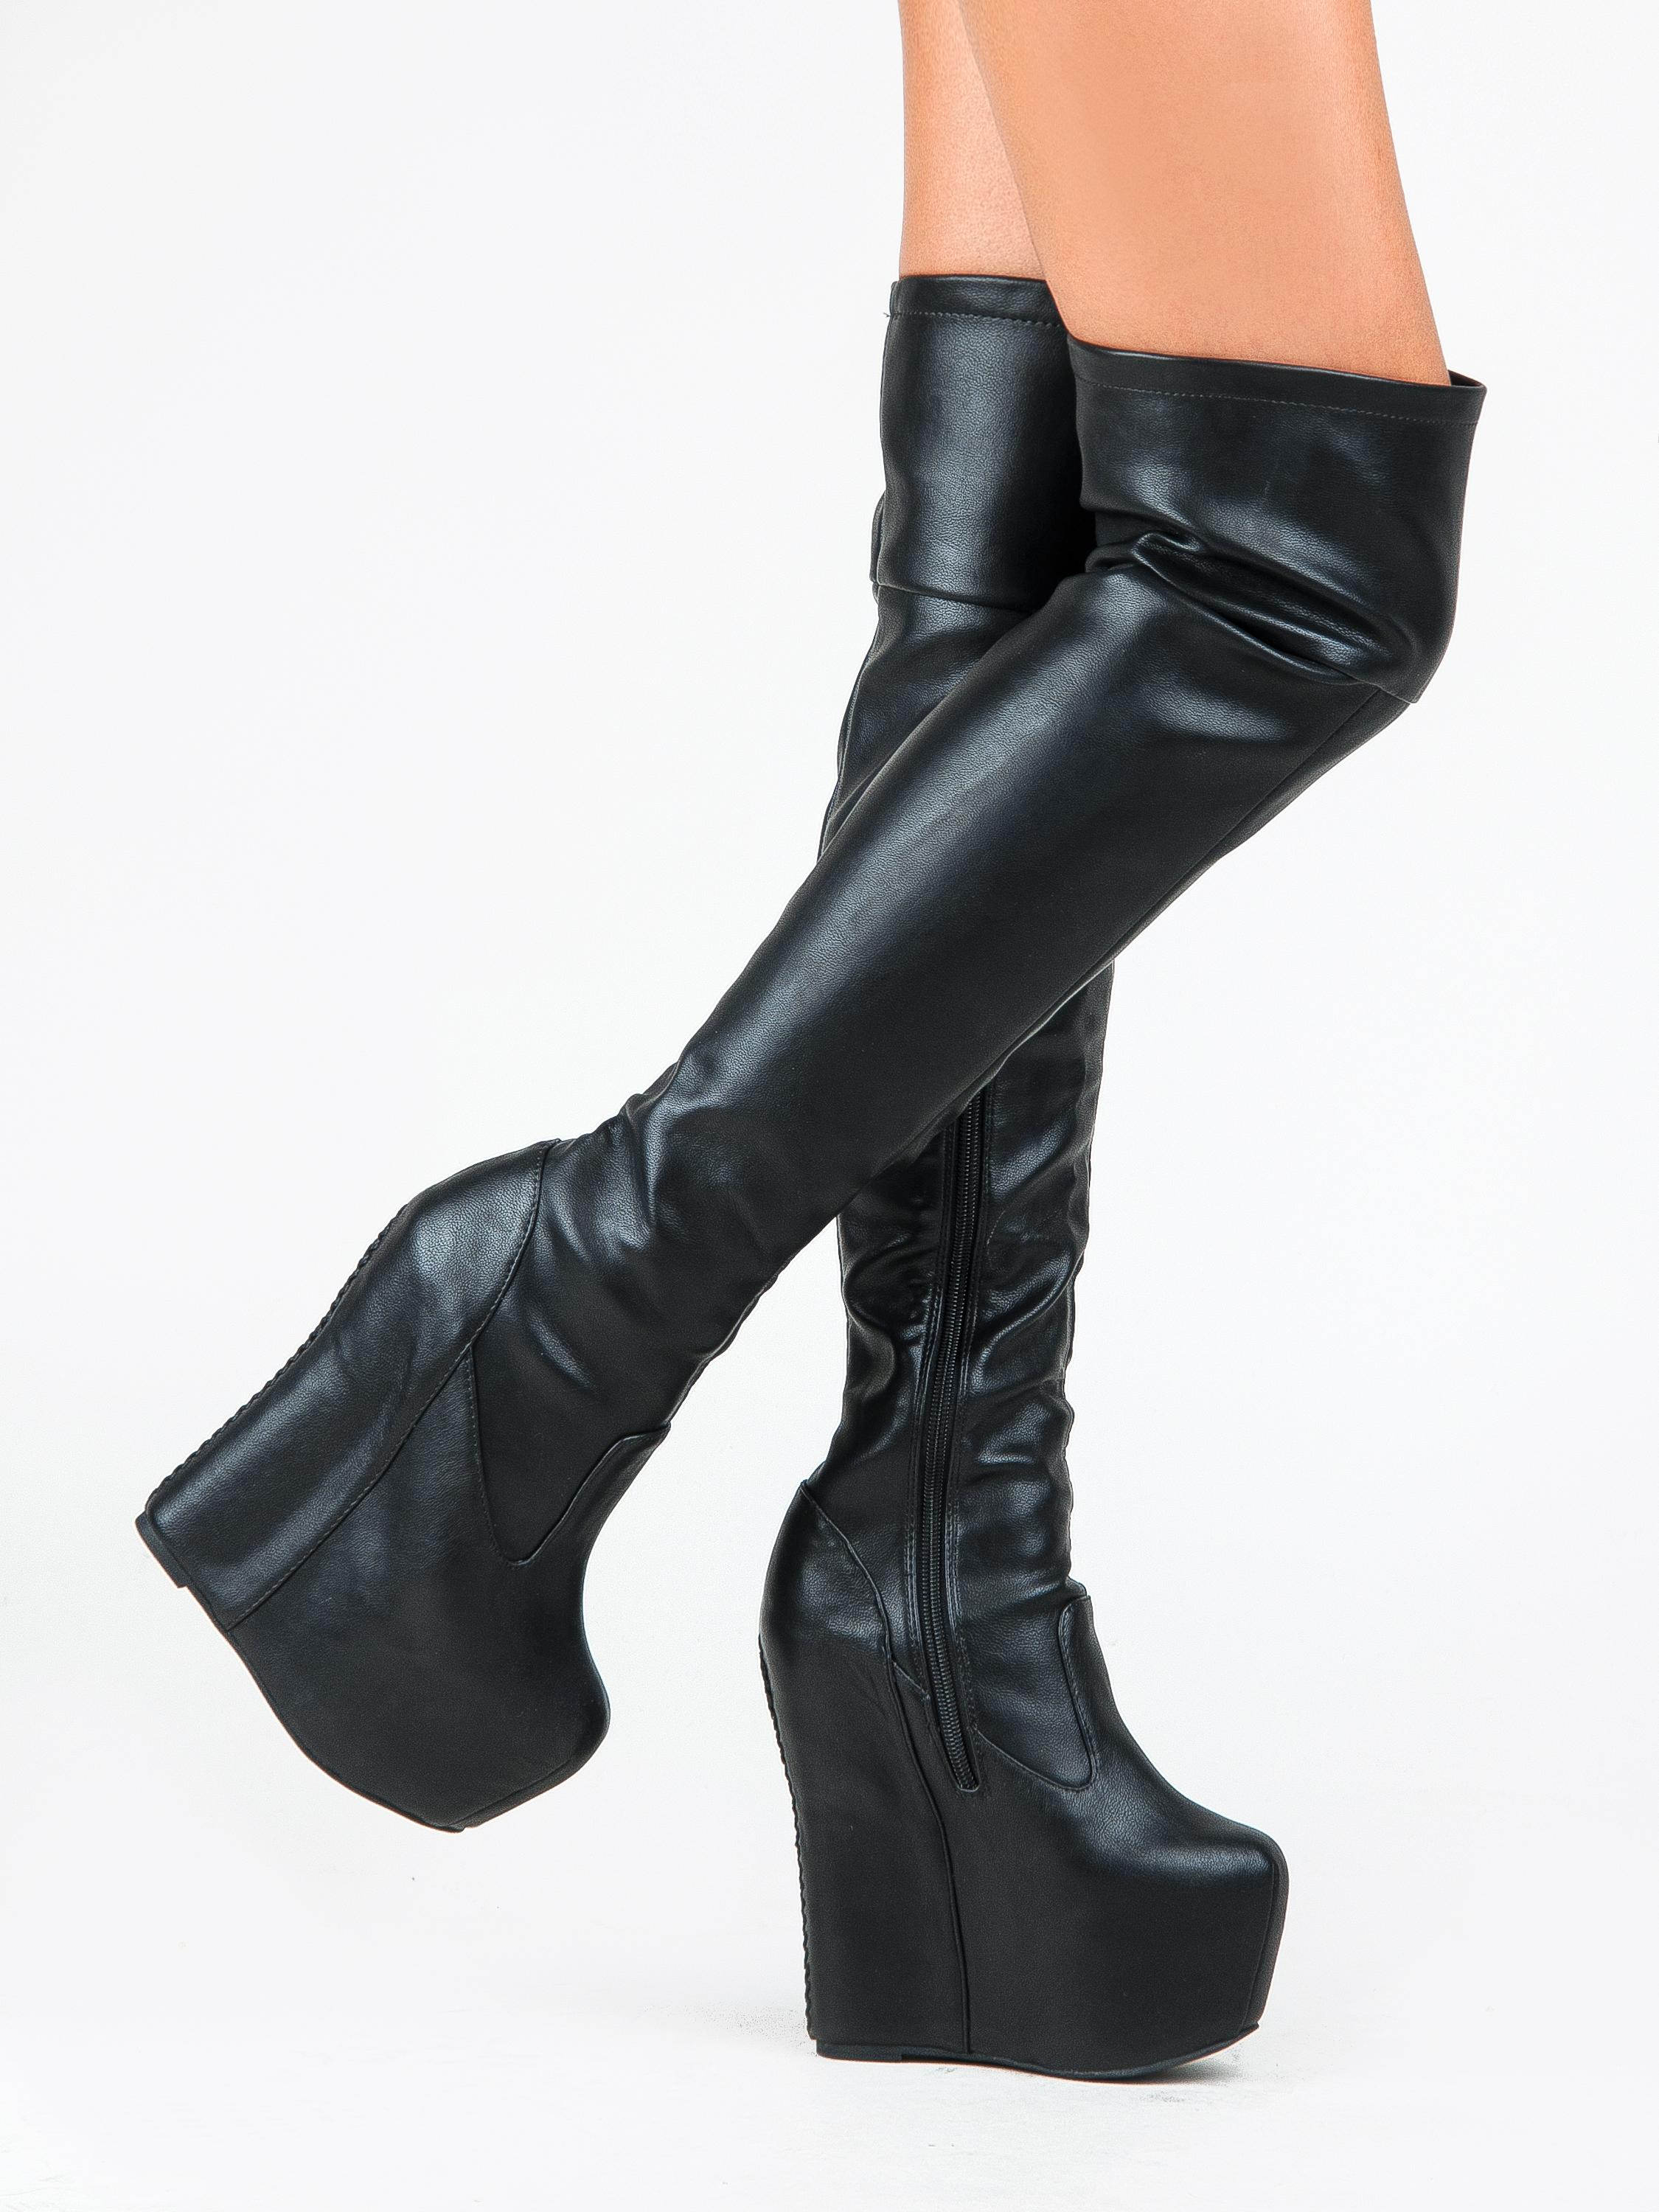 jeffrey campbell Noir  daRouge ordinaires evil bottes / chaussures ordinaires daRouge (- 8 taille m, b) 32a5cb